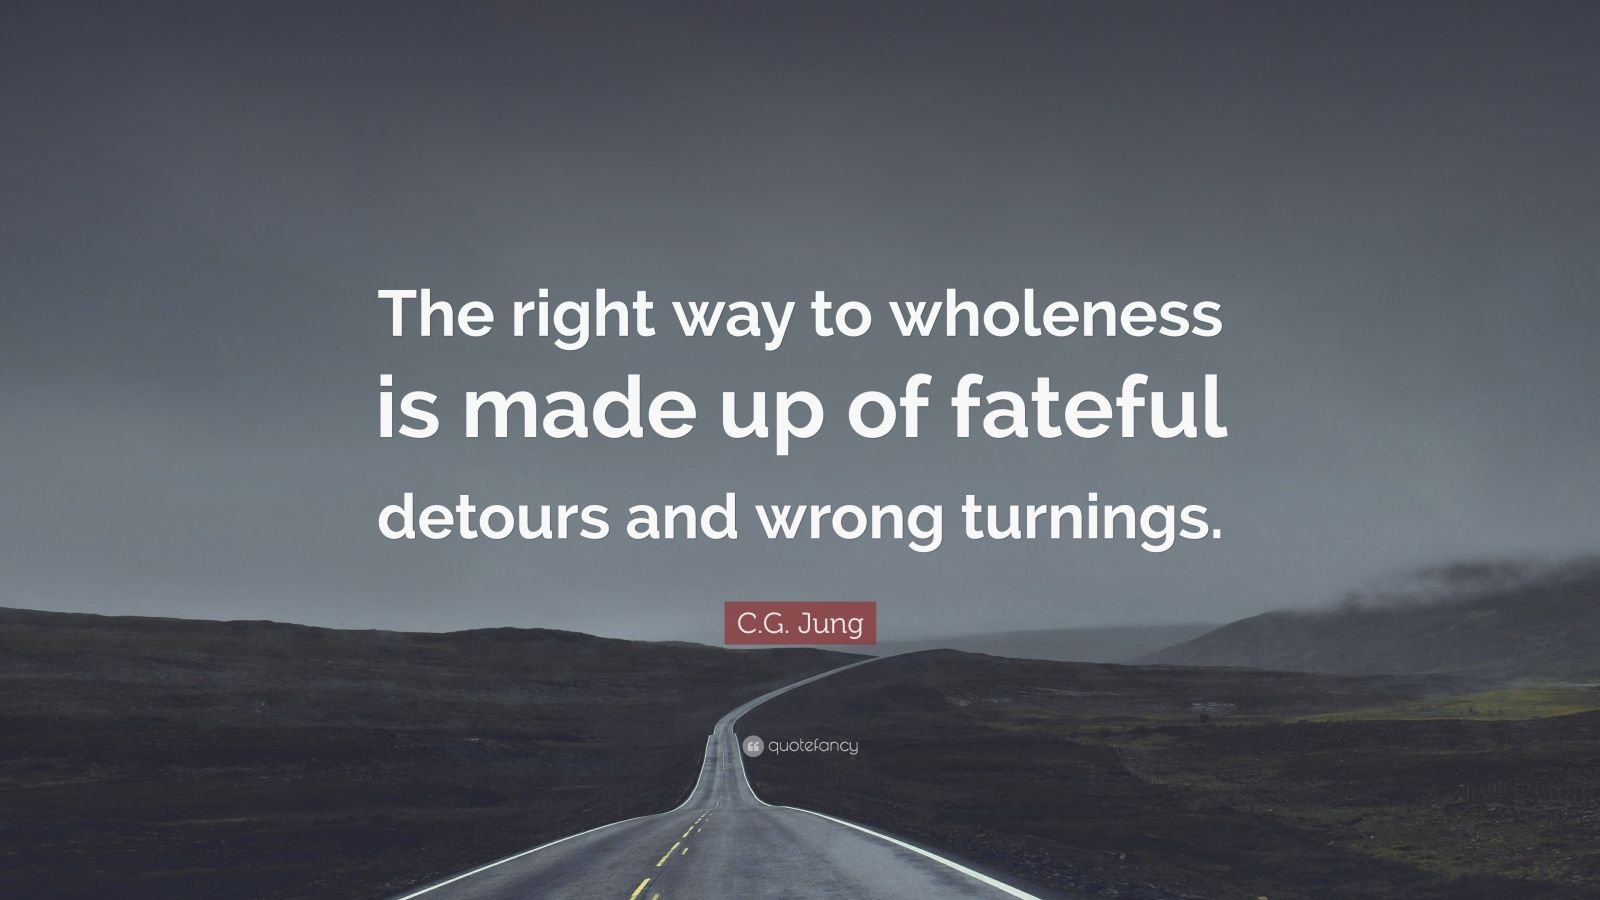 """C.G. Jung Quote: """"The right way to wholeness is made up of fateful detours and wrong turnings."""""""